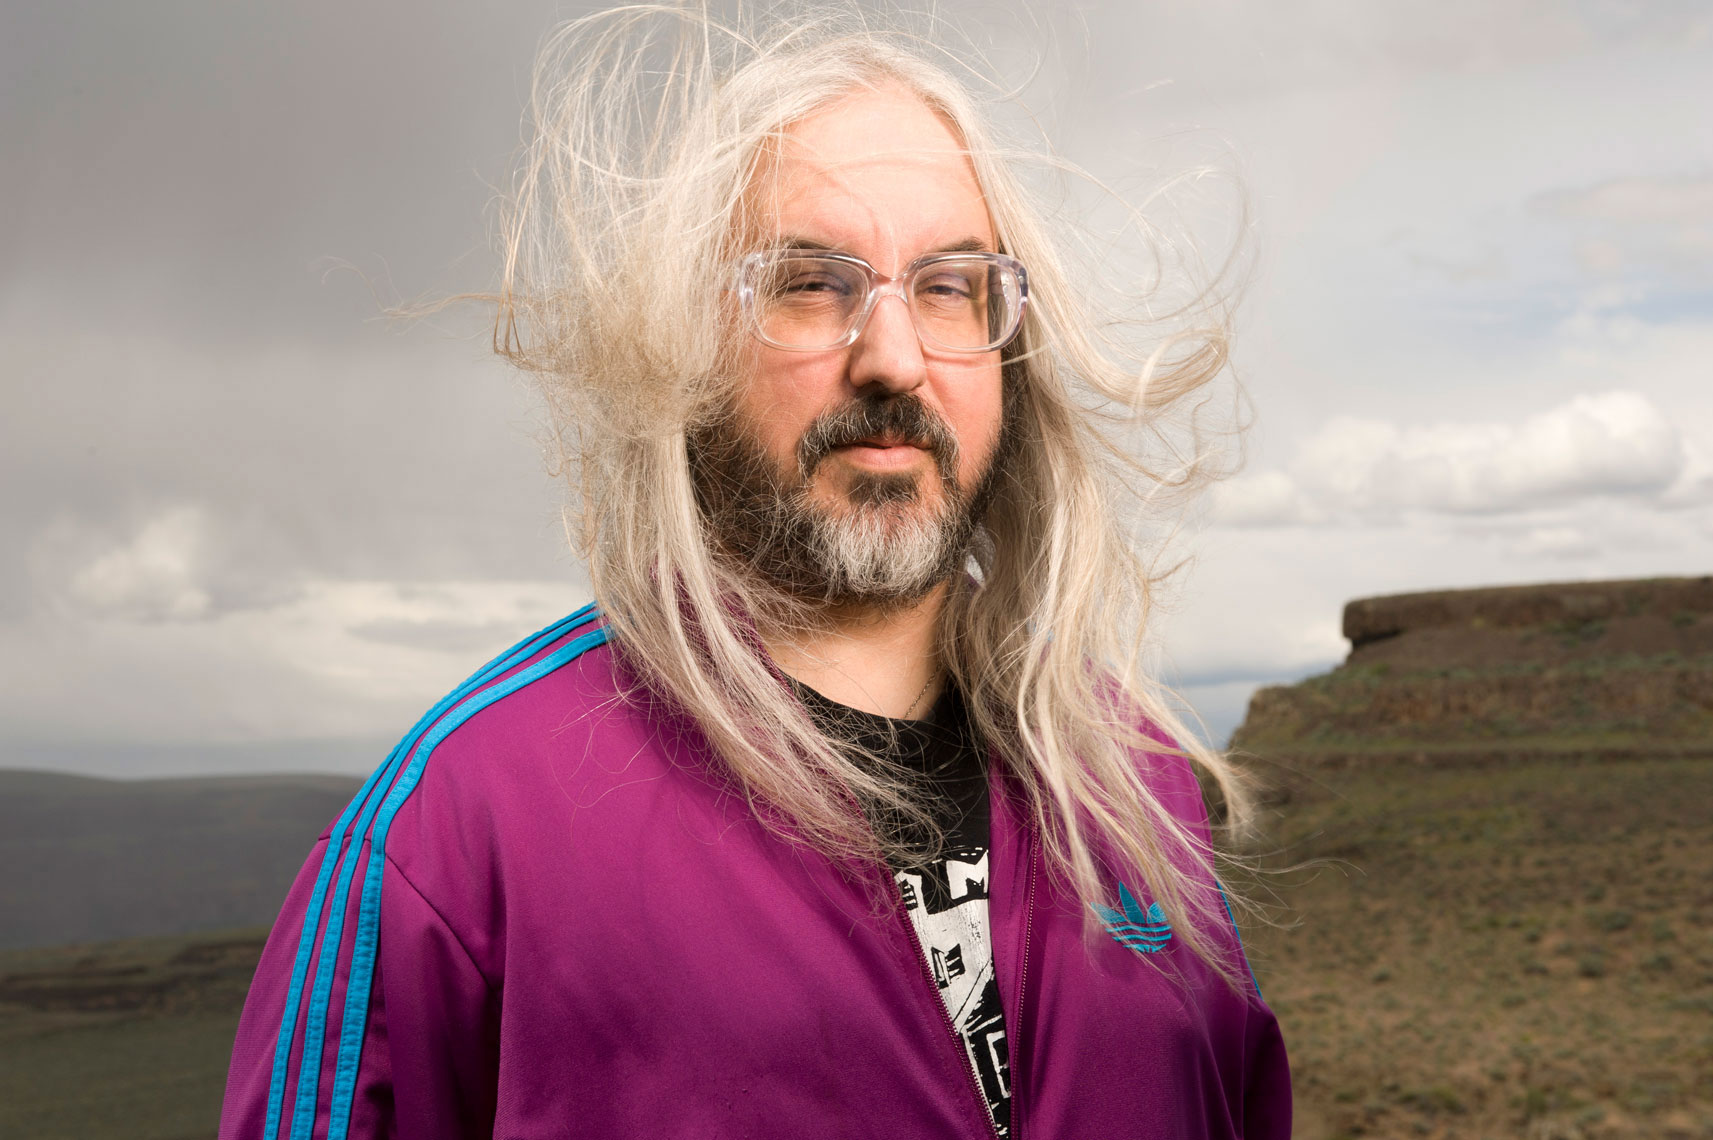 Jay Mascis of Dinosaur Jr.